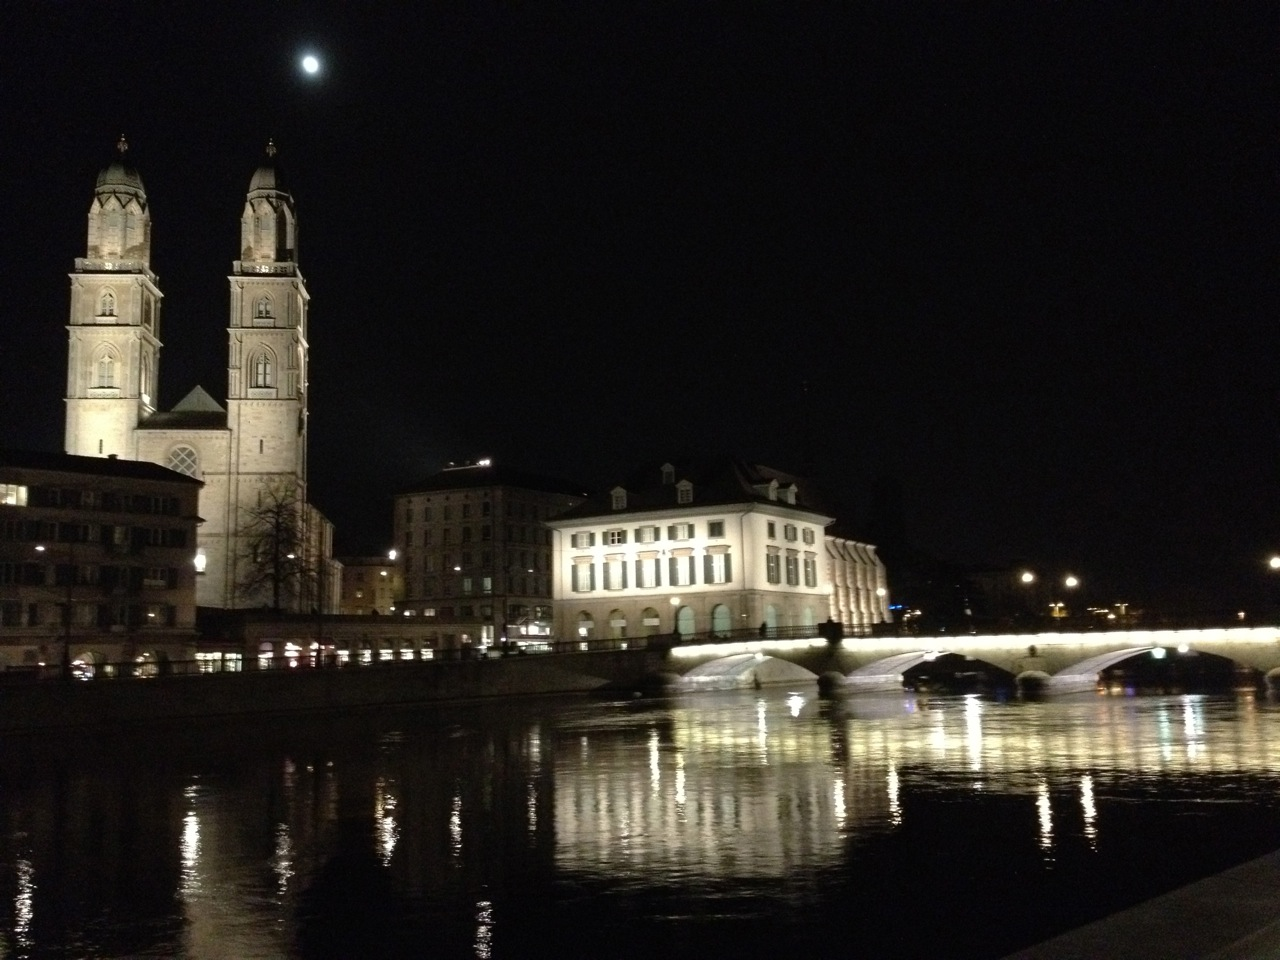 Zurich is one of the most picturesque cities in central Europe. A great way to finish the trip... full moon over town.